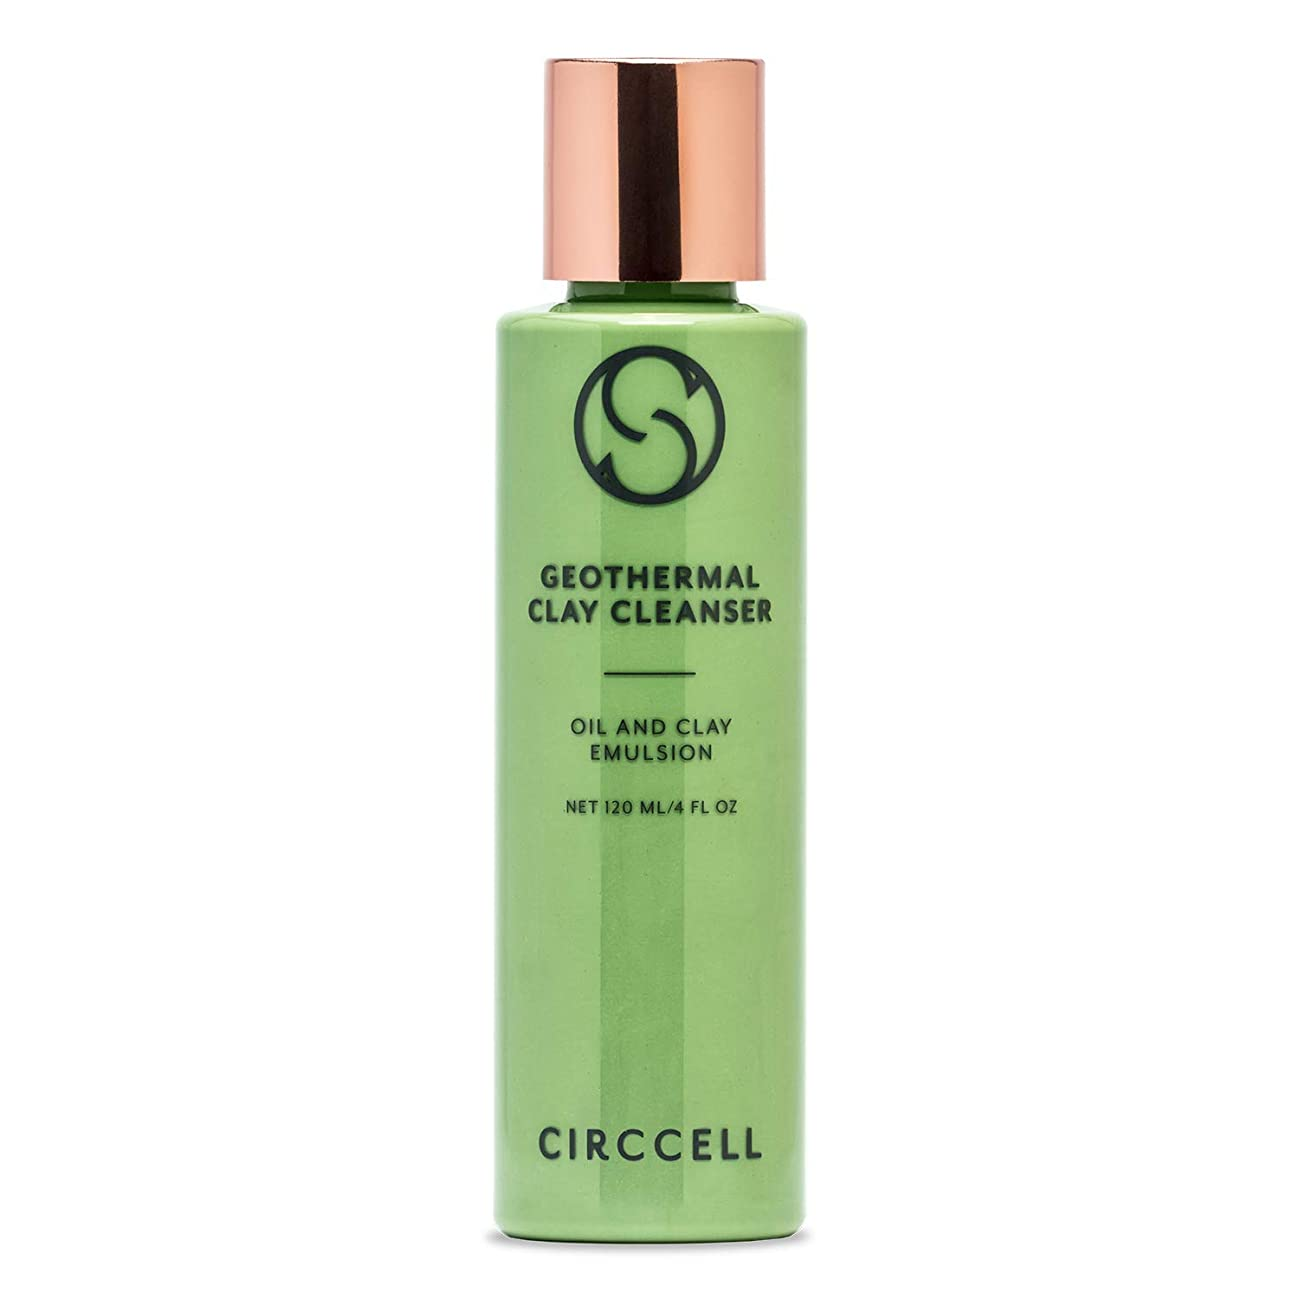 CIRCCELL Geothermal Clay Cleanser - Detoxifying & Hydrating Formula - Use as Clay Mask or Cleanser - Good for All Skin Types - 120 ml - Vegan & Cruelty Free